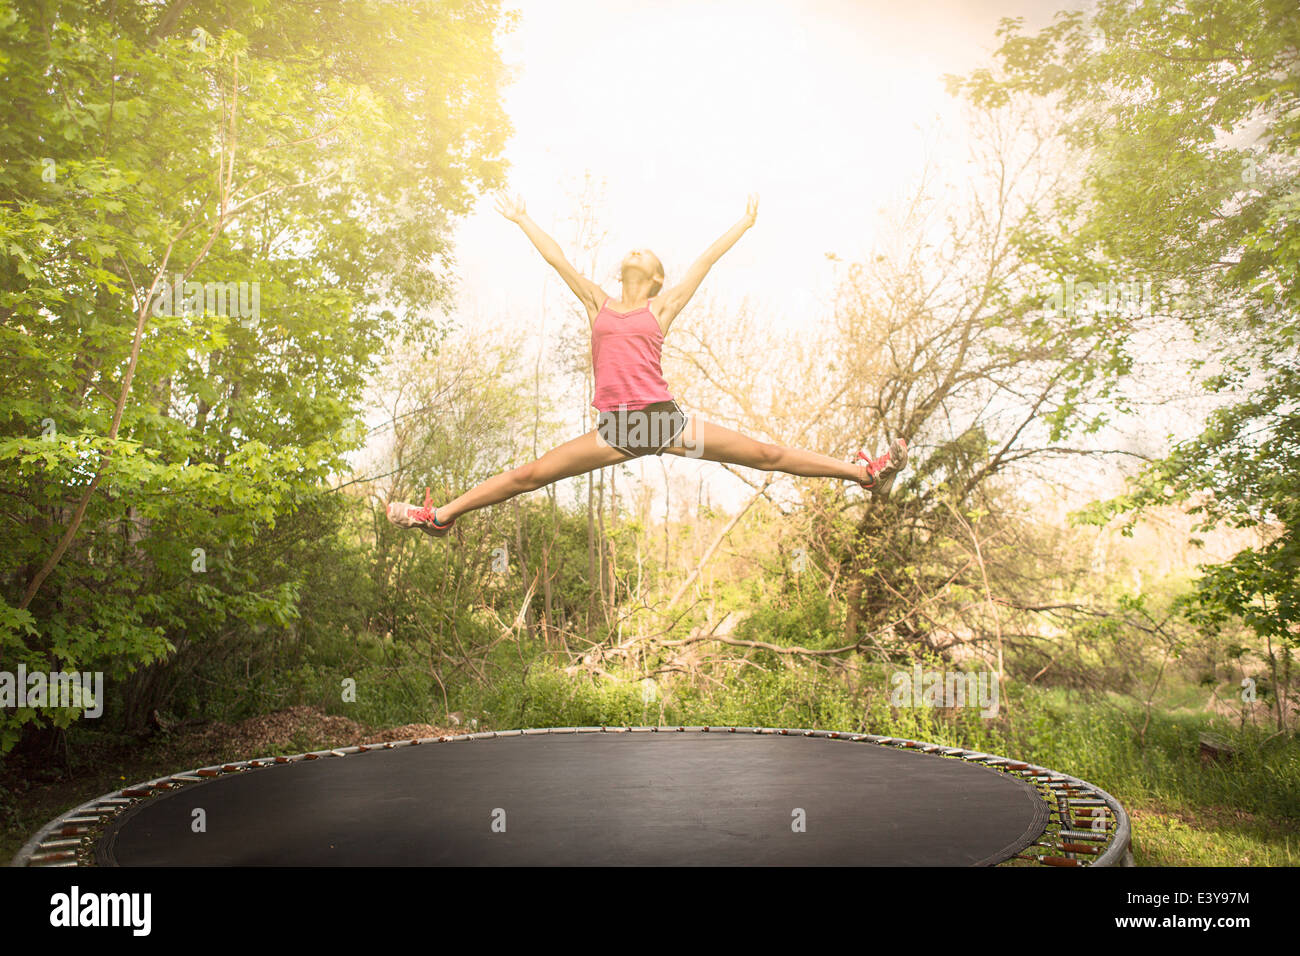 Teenage girl doing star jump on trampoline, outdoors - Stock Image